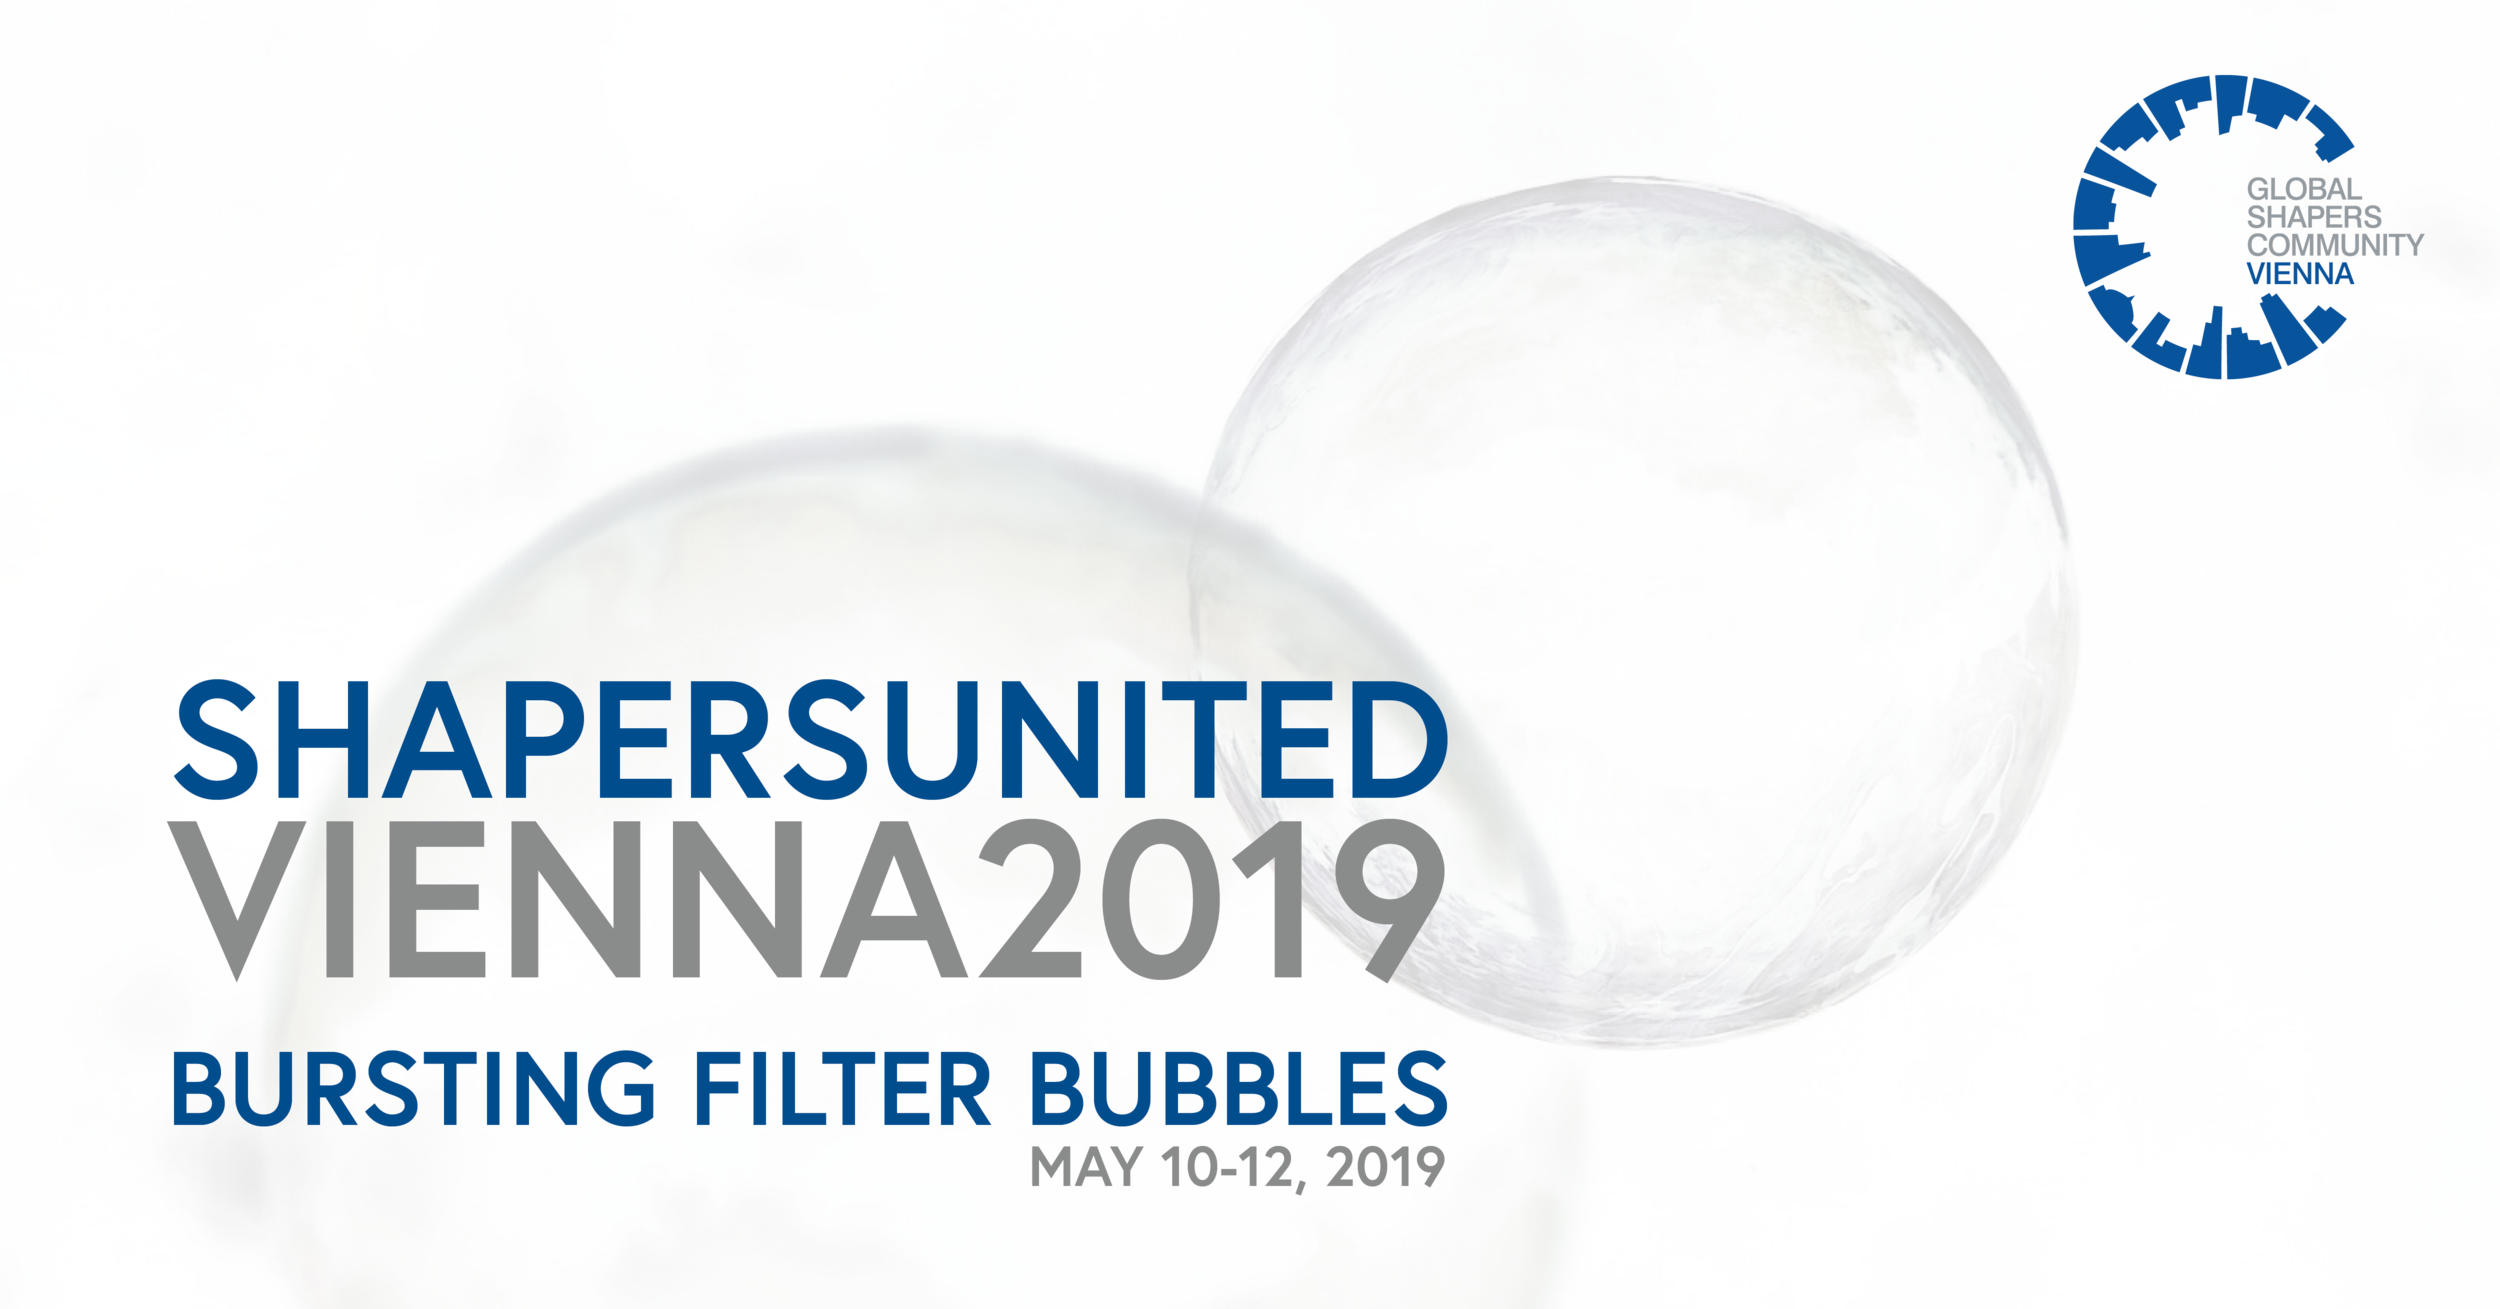 ShapersUnited 2019 - Bursting Filter Bubbles on May 10-12, 2019 in Vienna, Austria